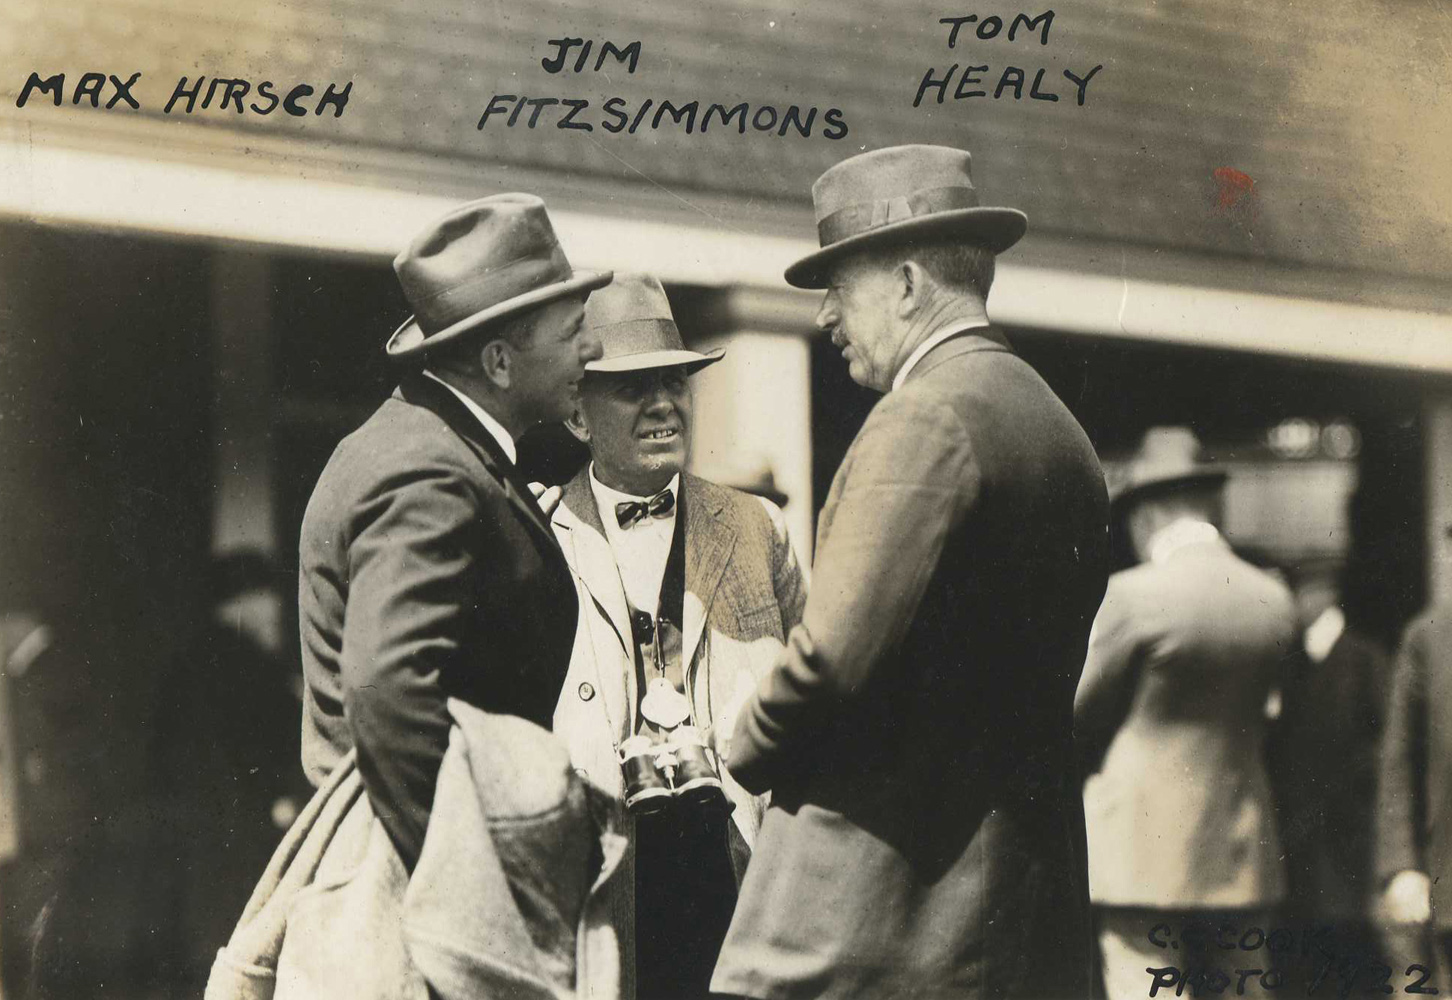 """Hall of Fame trainers Max Hirsch, James""""Sunny Jim"""" Fiitzsimmons and T. J. Healey in 1922 (C. C. Cook/Museum Collection)"""